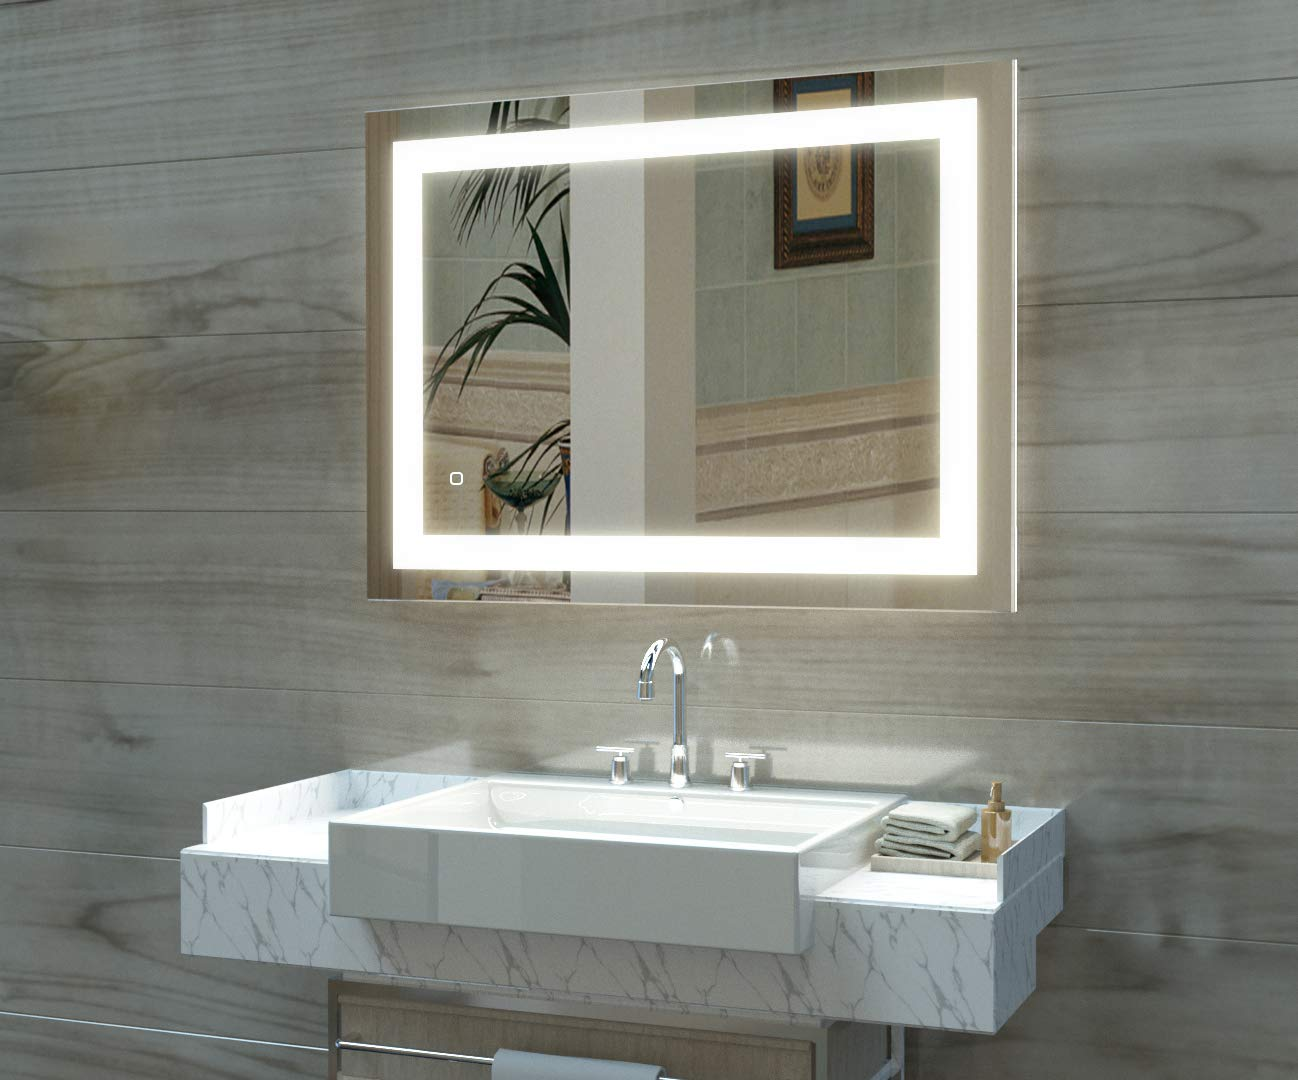 HAUSCHEN Lighted Bathroom Mounted Dimmable